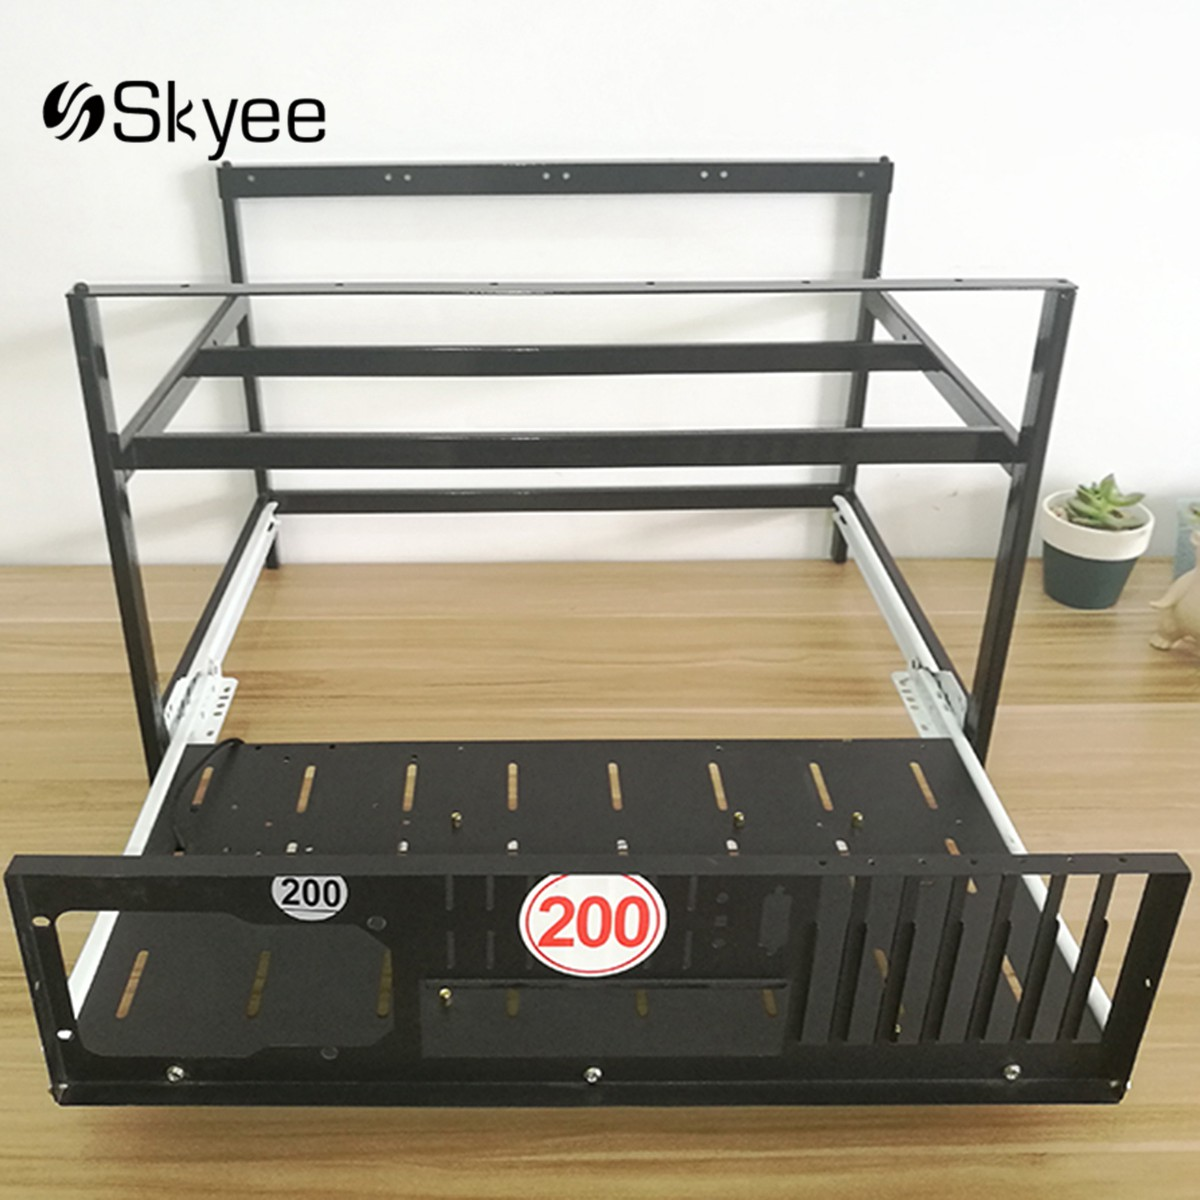 S SKYEE Open Air Mining Rig Push-pull Frame Miner Case for 6 GPU ETC BTH New Computer Mining Case Frame Server Chassis сабвуфер acv swf pro124d open air